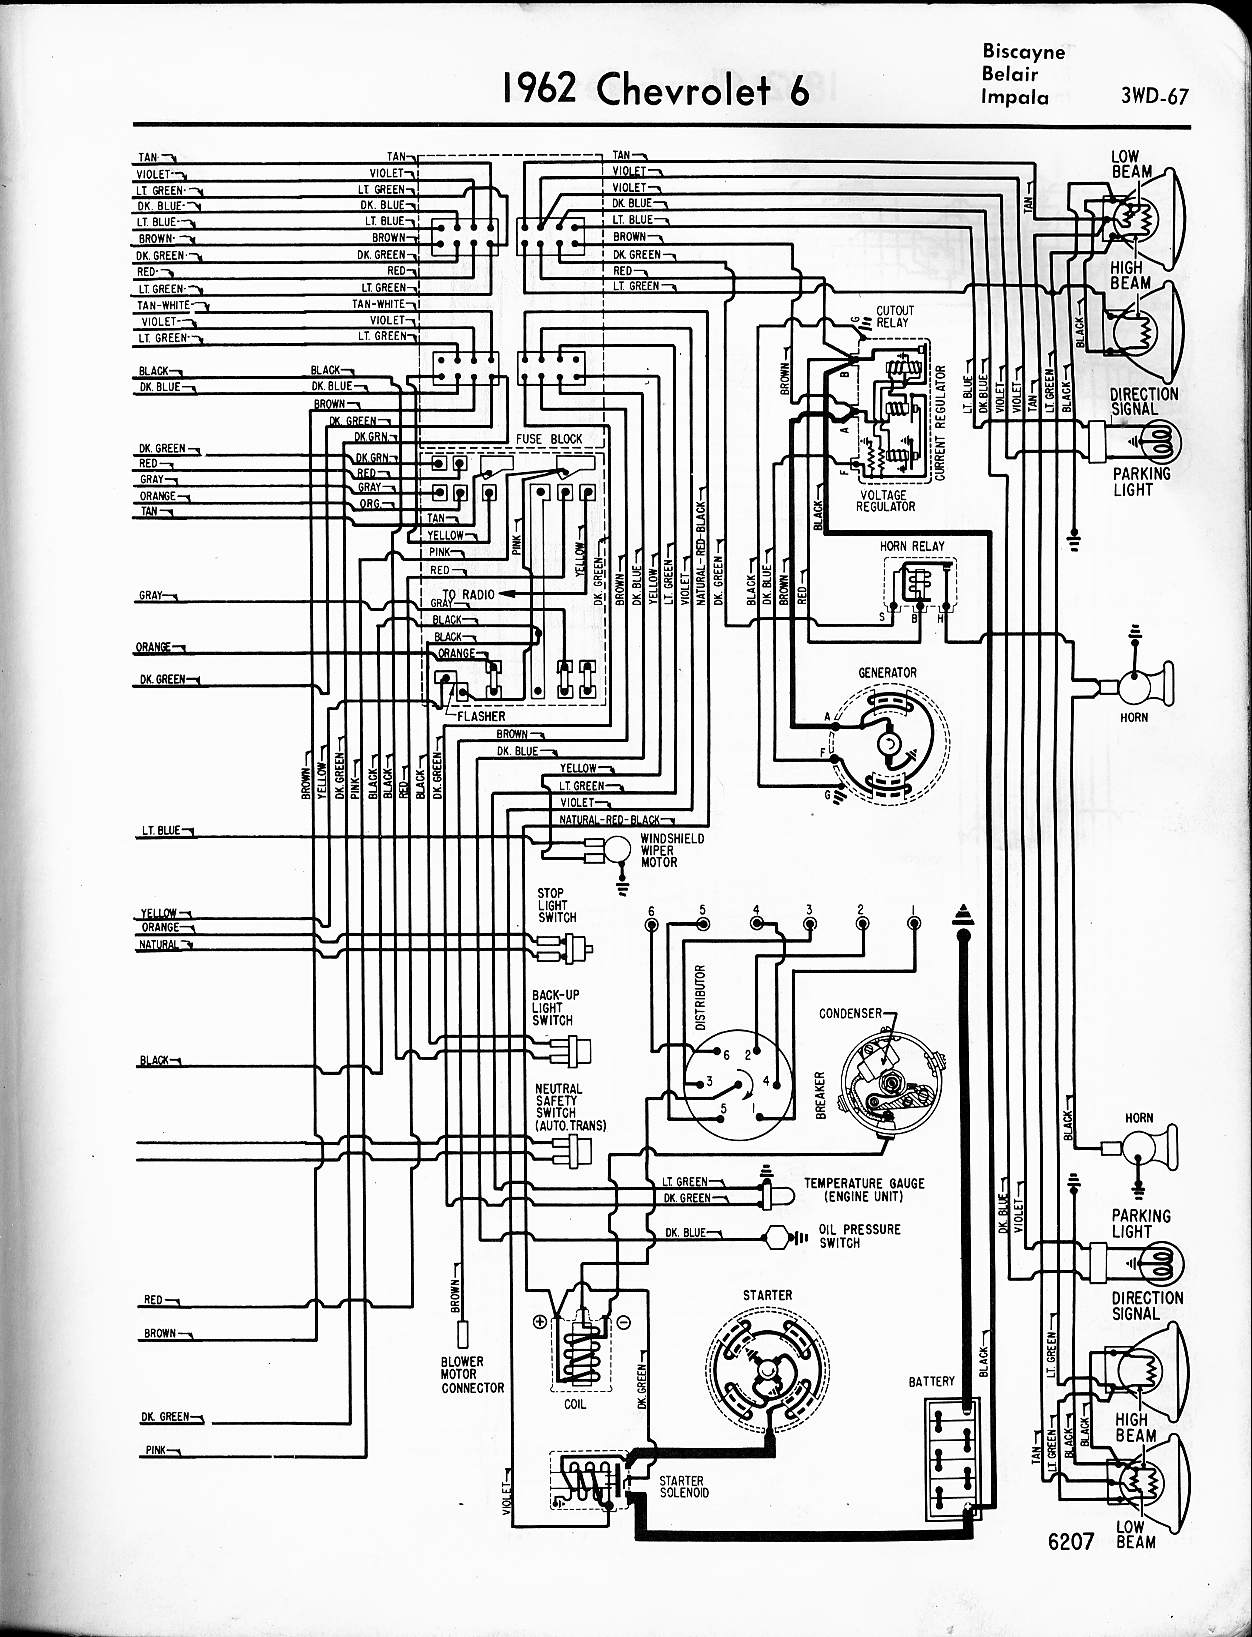 1963 cj5 wiring schematic 1980 cj5 wiring schematic for 1966 jeep cj5 wiring diagram for a | wiring library